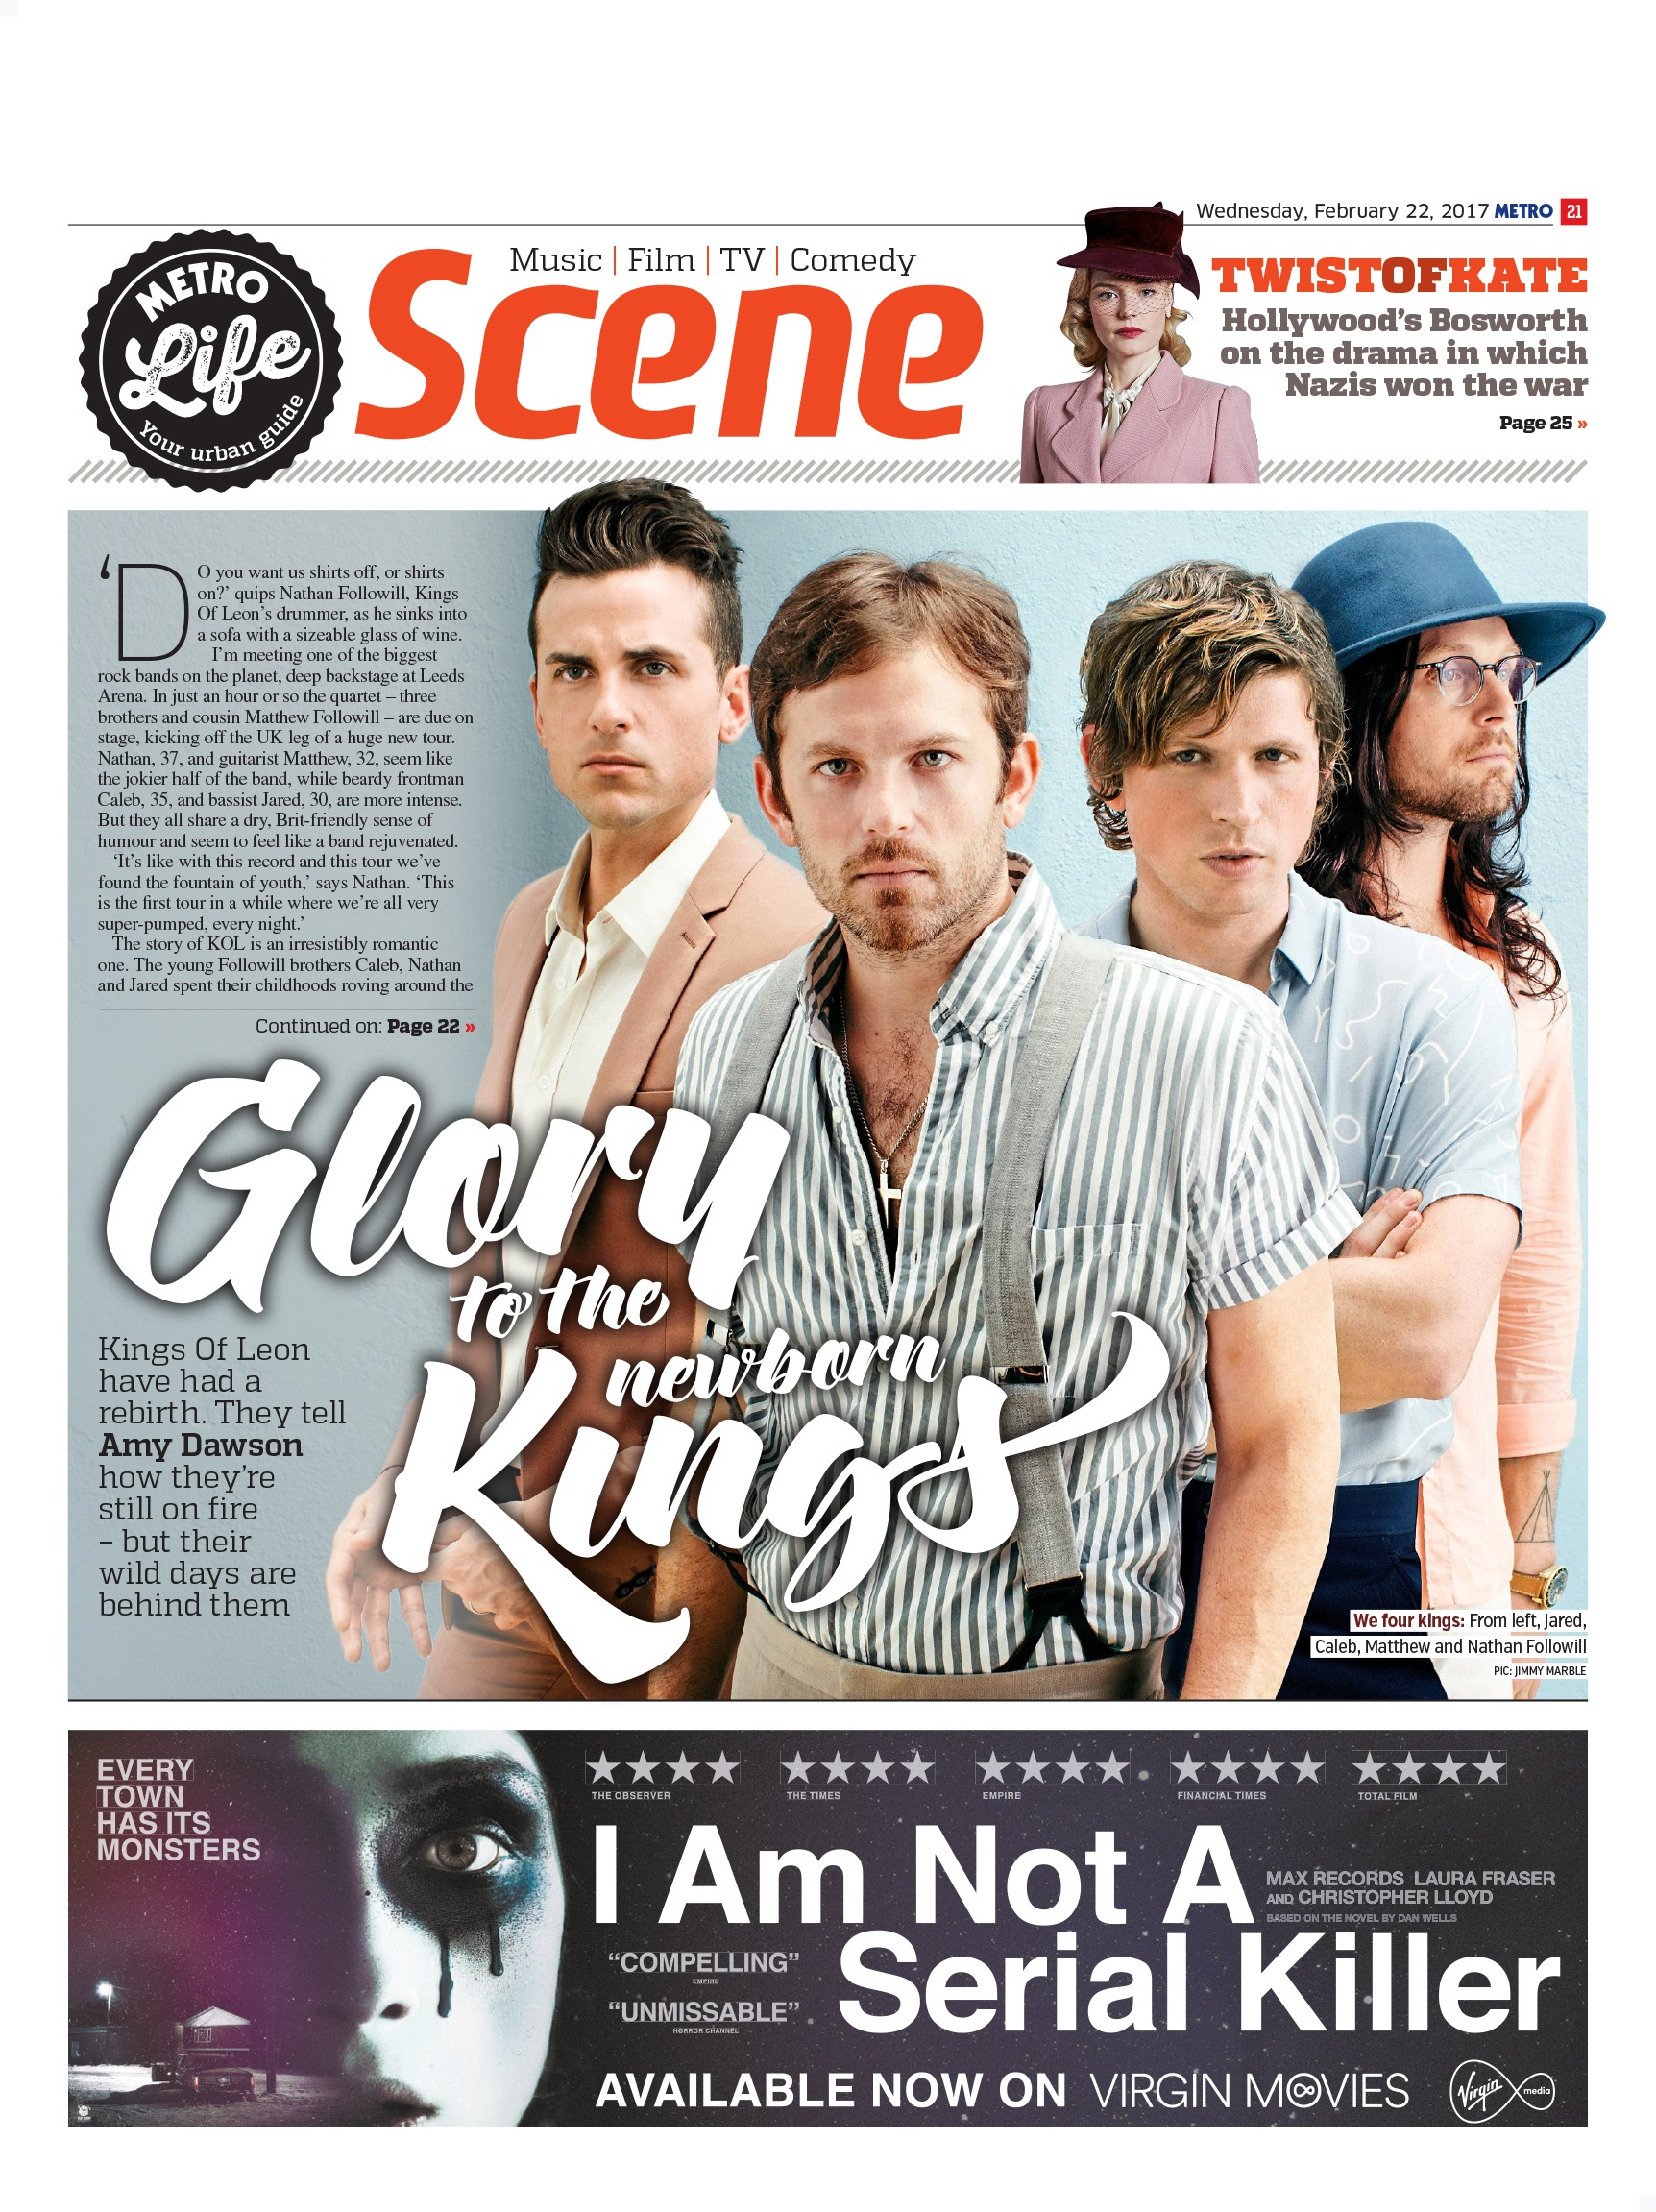 Glory To The New-Born Kings: An Interview With Kings of Leon (Metro, 22nd Feb 2017)